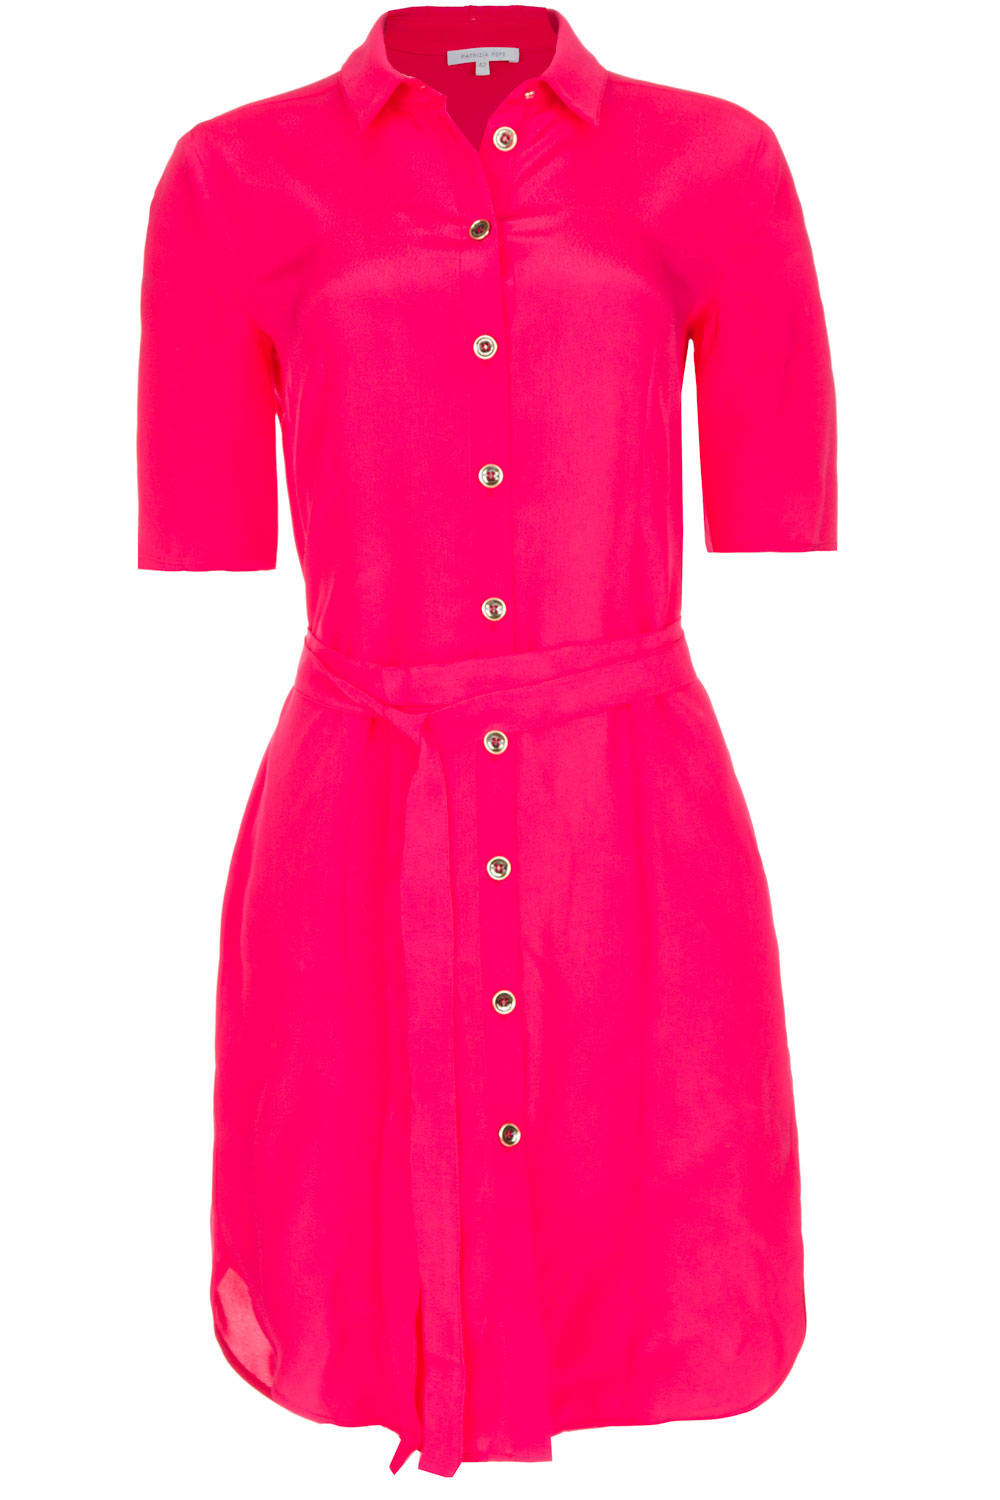 be2ef74d1532 100% viscose dress with collar Donna